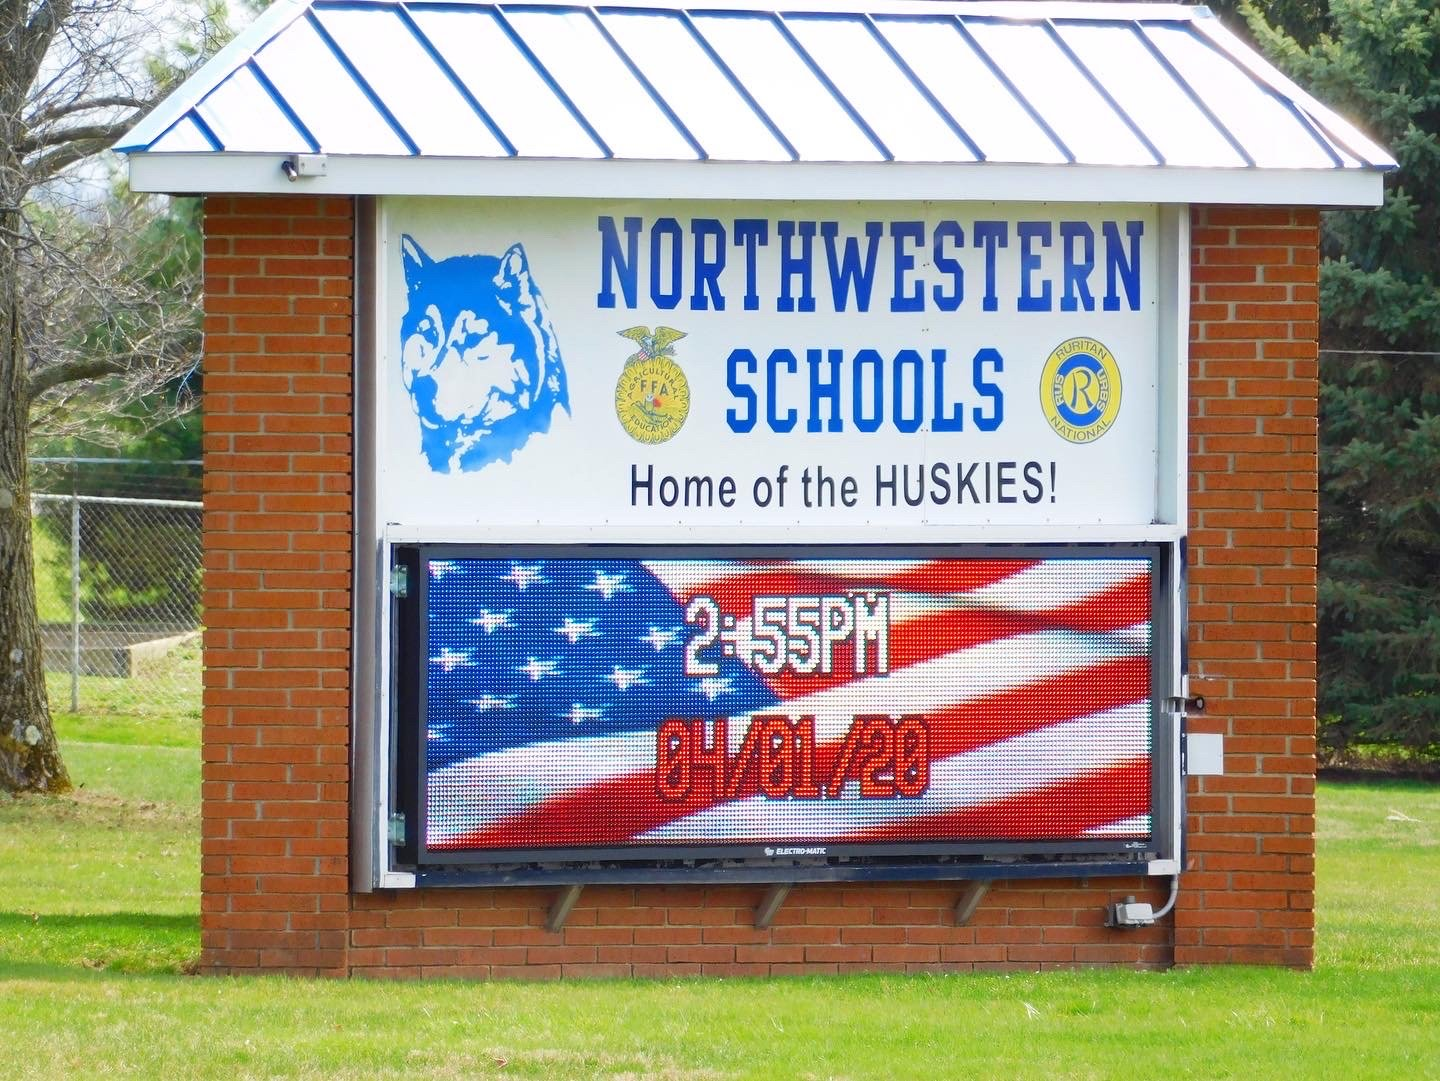 Northwestern Schools Upgrade to LED Fusion Display after Storm Damages